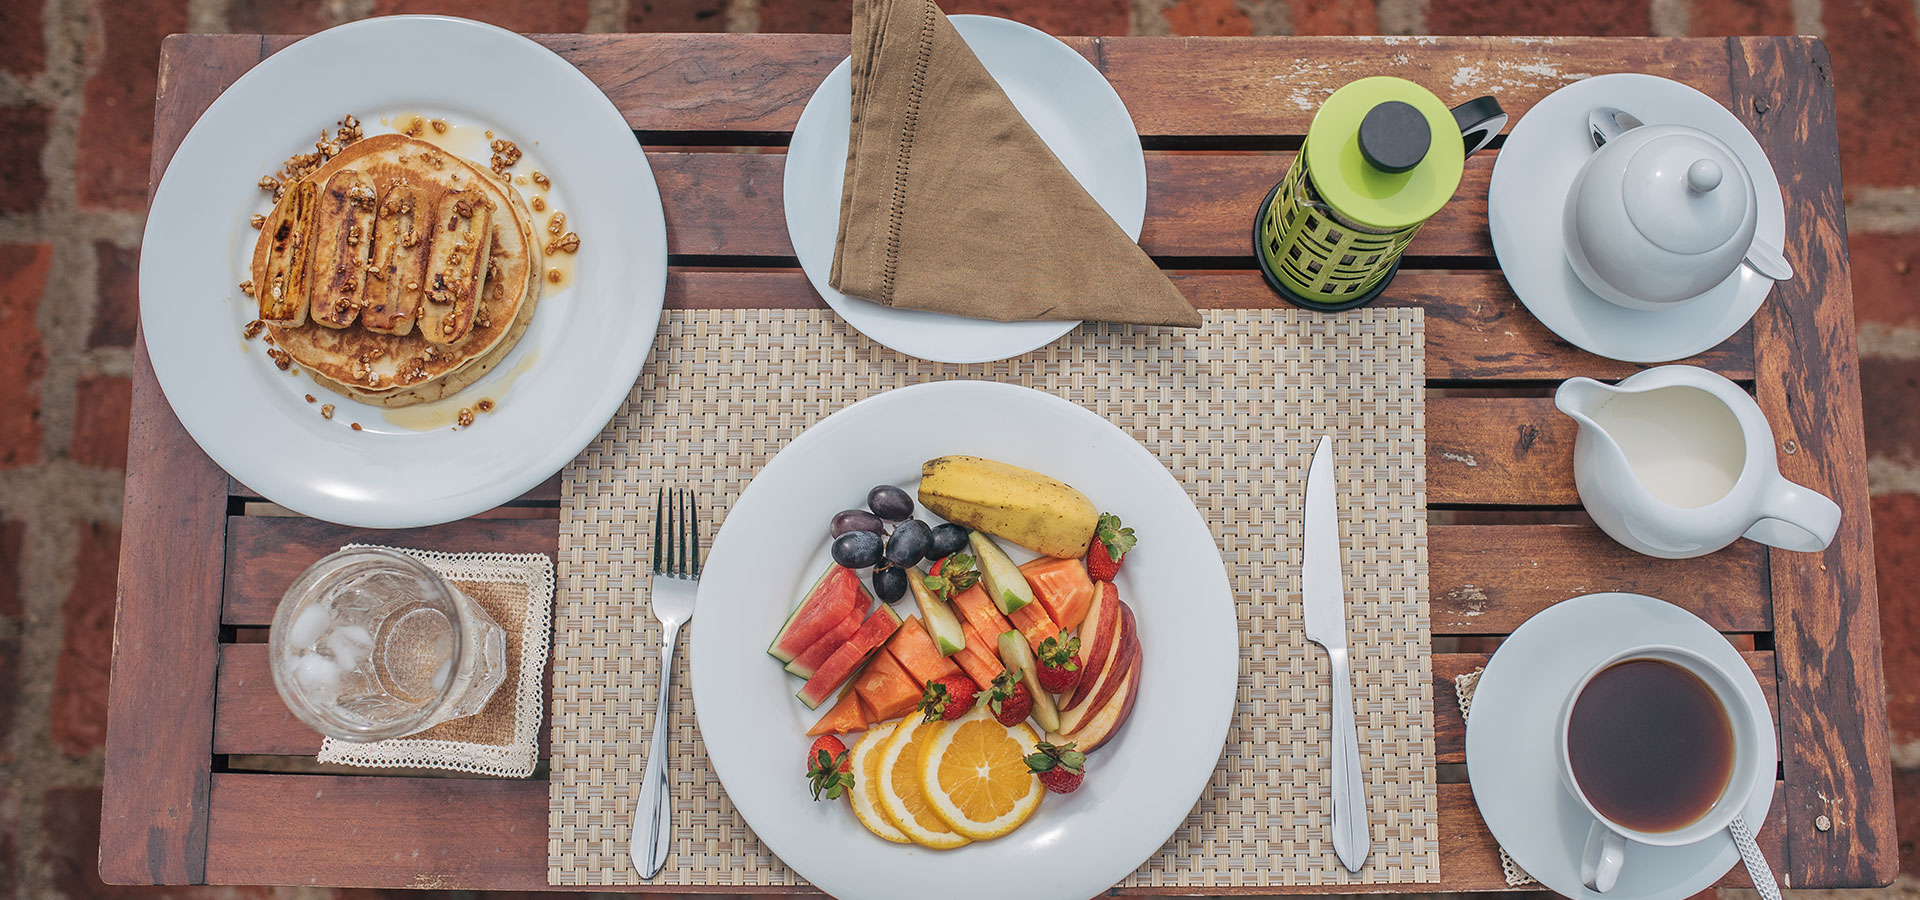 Serendipity_Hotels_enjoy a balanced breakfast at villa thuya